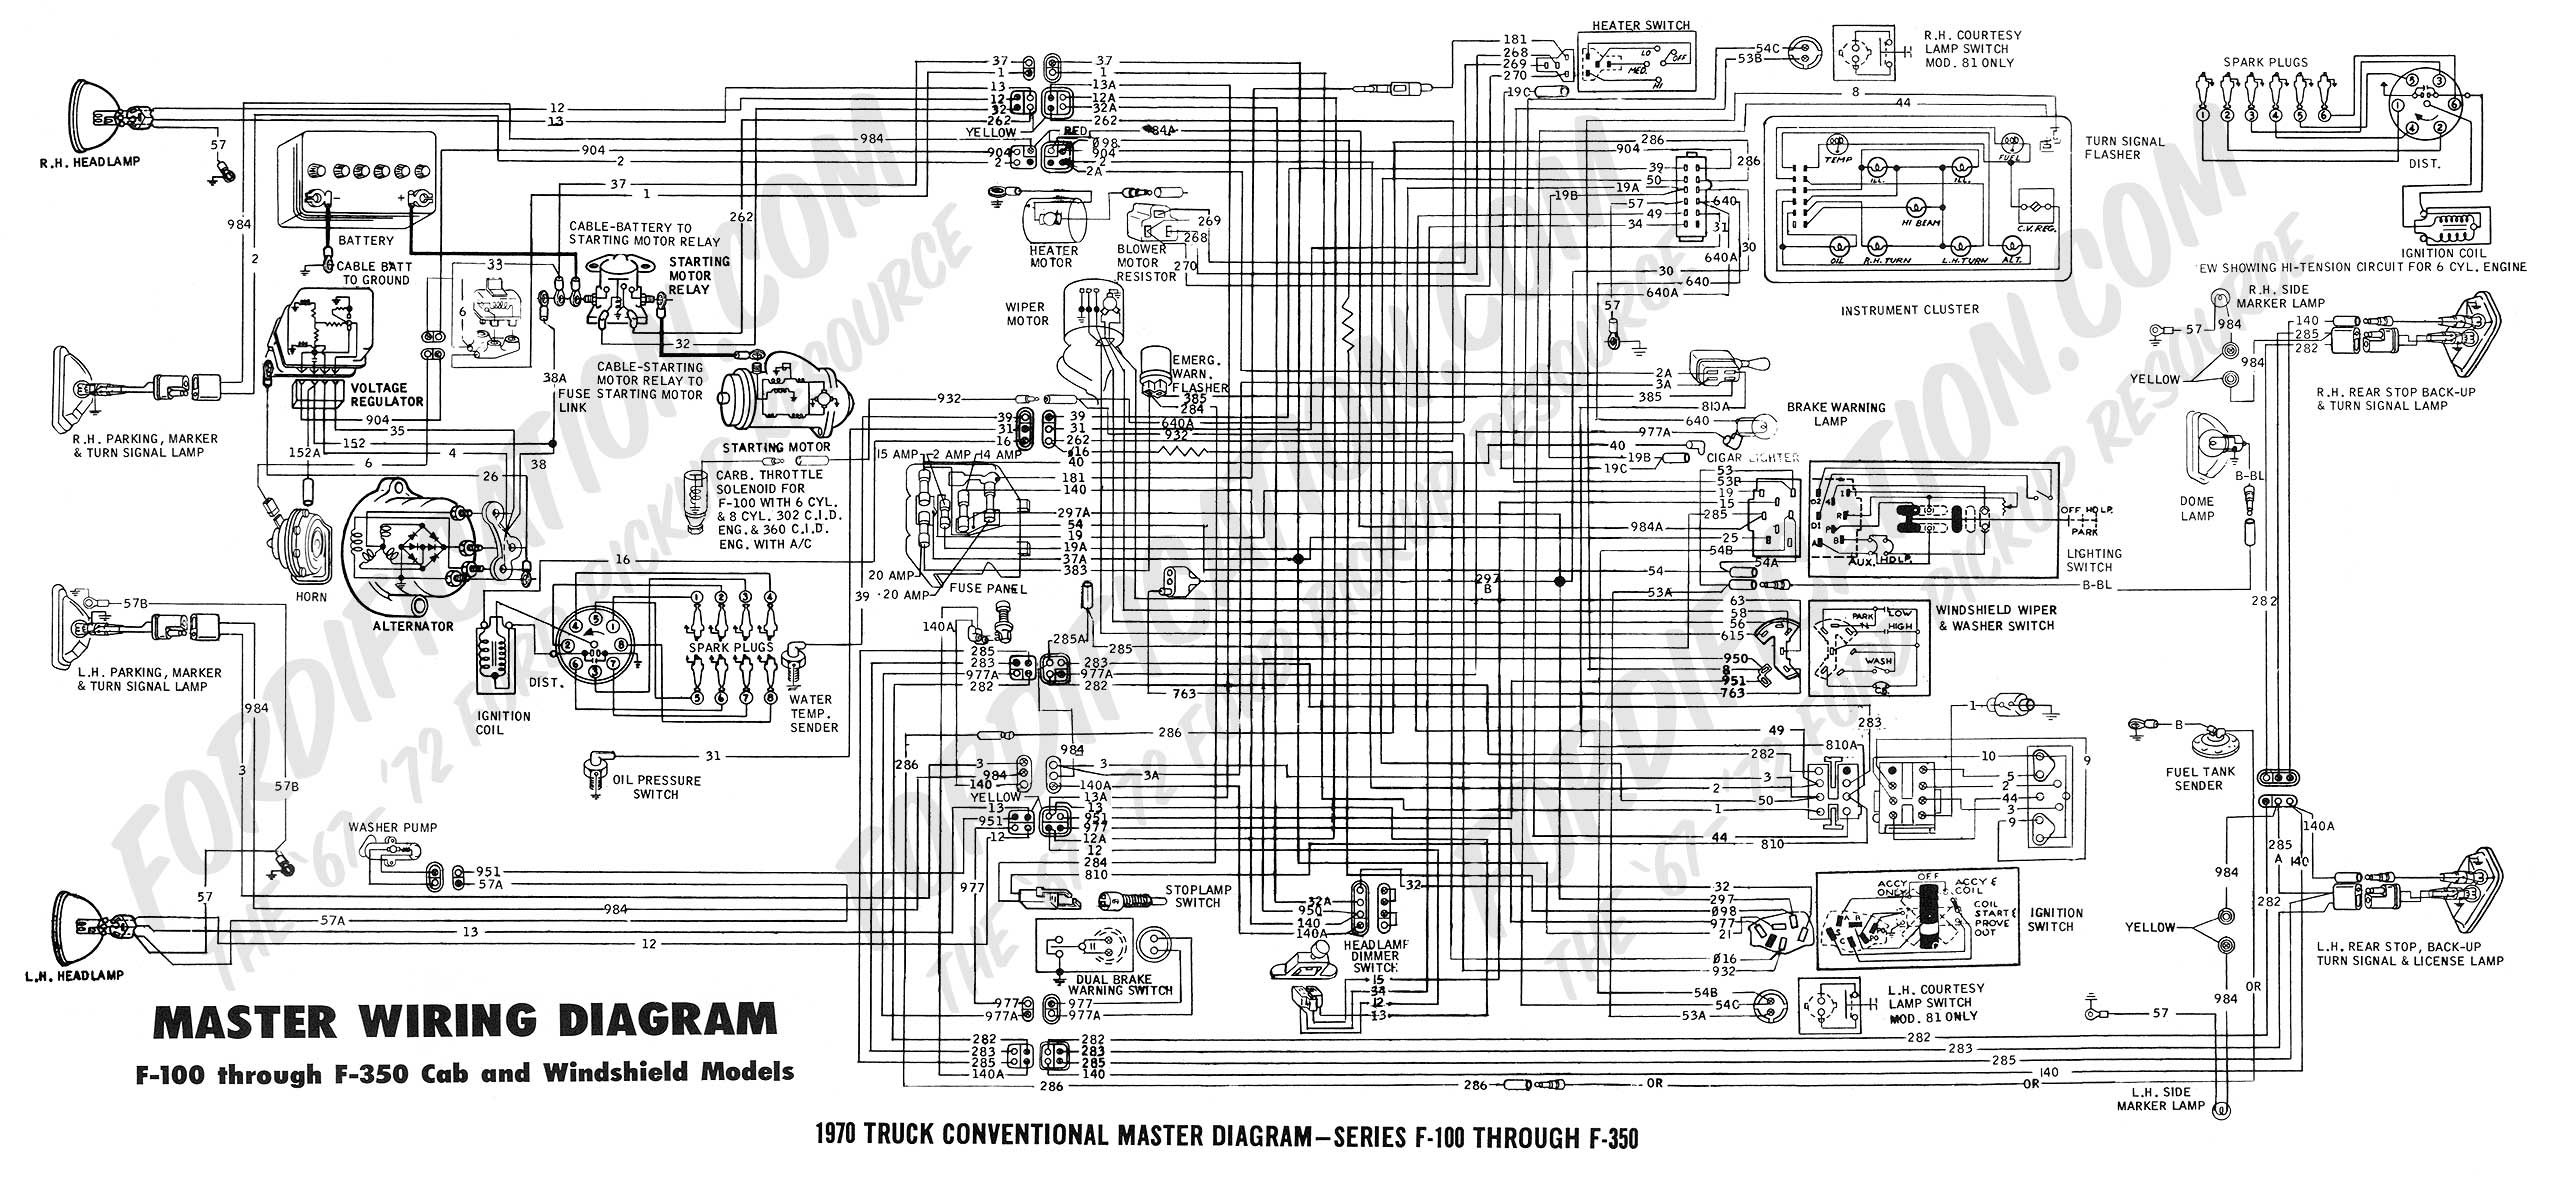 Light Switch Diagram 1978 Ford - Wiring Block Diagram on 1979 ford cab mount, 1979 ford tires, 1979 ford solenoid, 1979 ford brake system, 1979 ford accessories, 1958 thunderbird wiring diagram, ignition control module wiring diagram, 1967 ford wiring diagram, 77 ford truck wiring diagram, 1976 ford alternator wiring diagram, 1979 ford headlight, 1979 ford starter, 1961 thunderbird wiring diagram, ford tractor alternator wiring diagram, 1979 ford frame, 1965 lincoln wiring diagram, 1979 ford engine, 1979 ford ignition coil, 1979 ford truck turn signals, 1979 ford water pump,